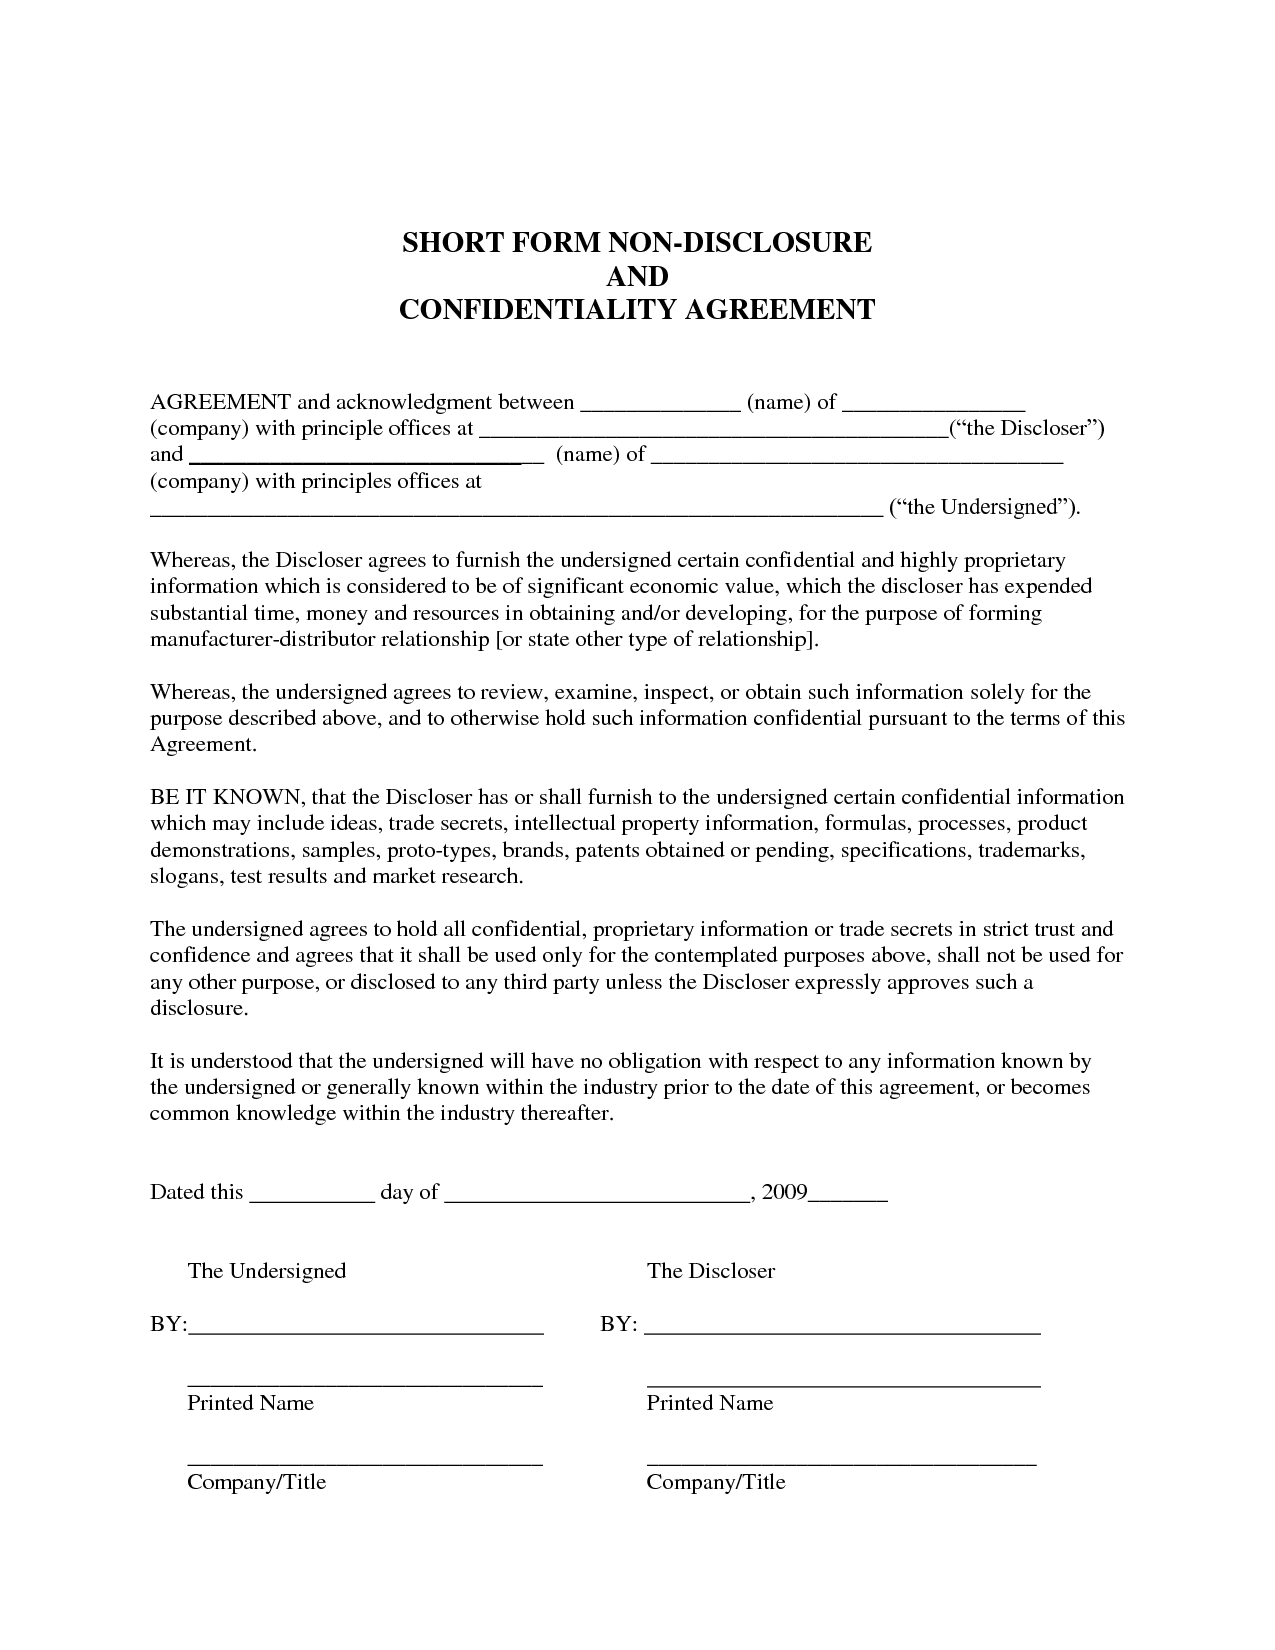 Sample NonDisclosure Agreement Confidentiality Agreement Sample - One page nda template